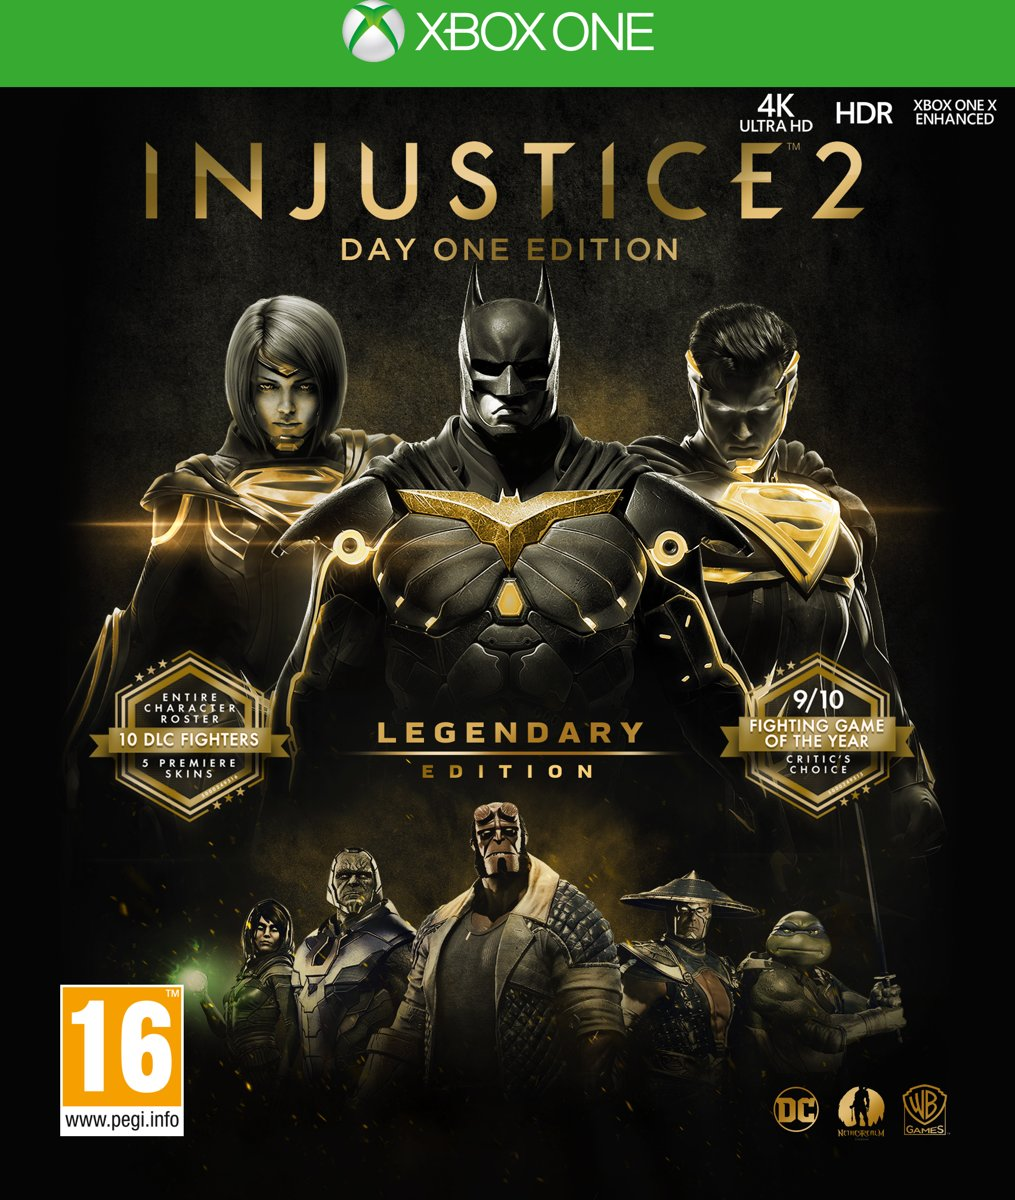 Injustice 2 - Legendary Edition (Day One Edition) Xbox One